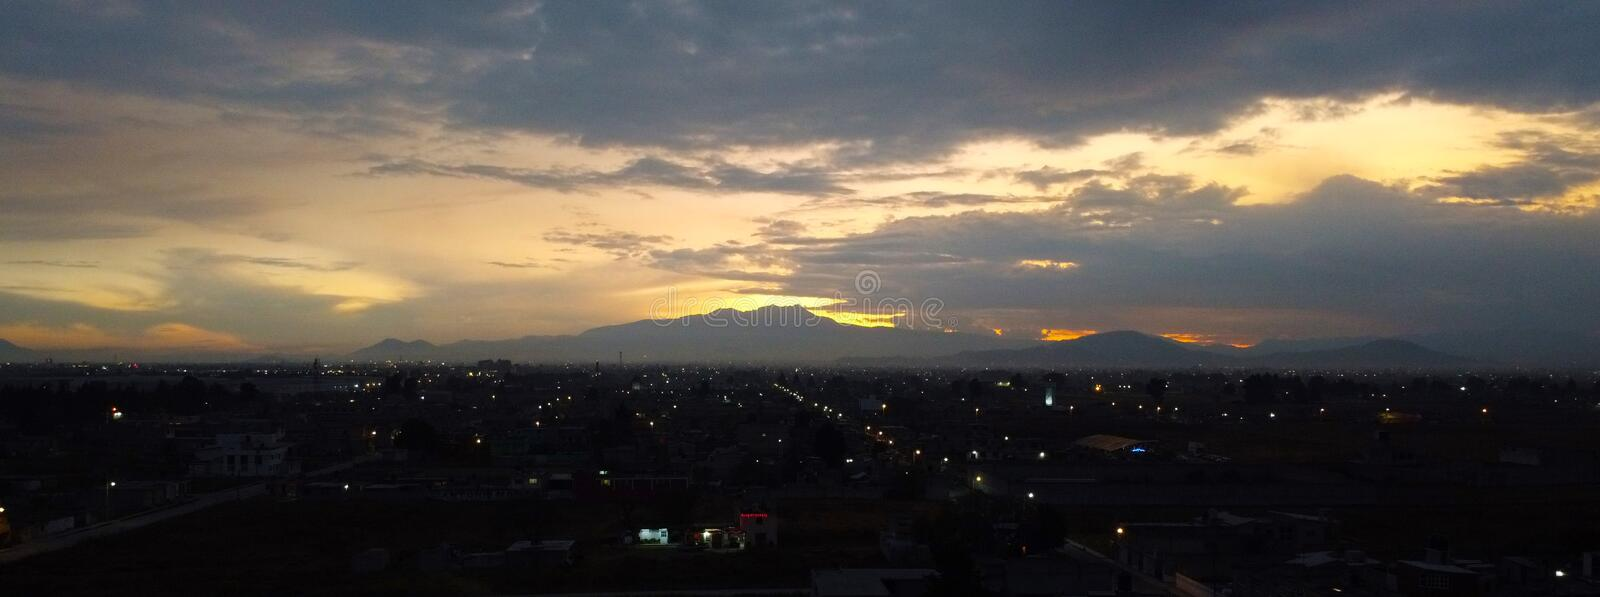 Sunset in the nevado de toluca volcano royalty free stock images